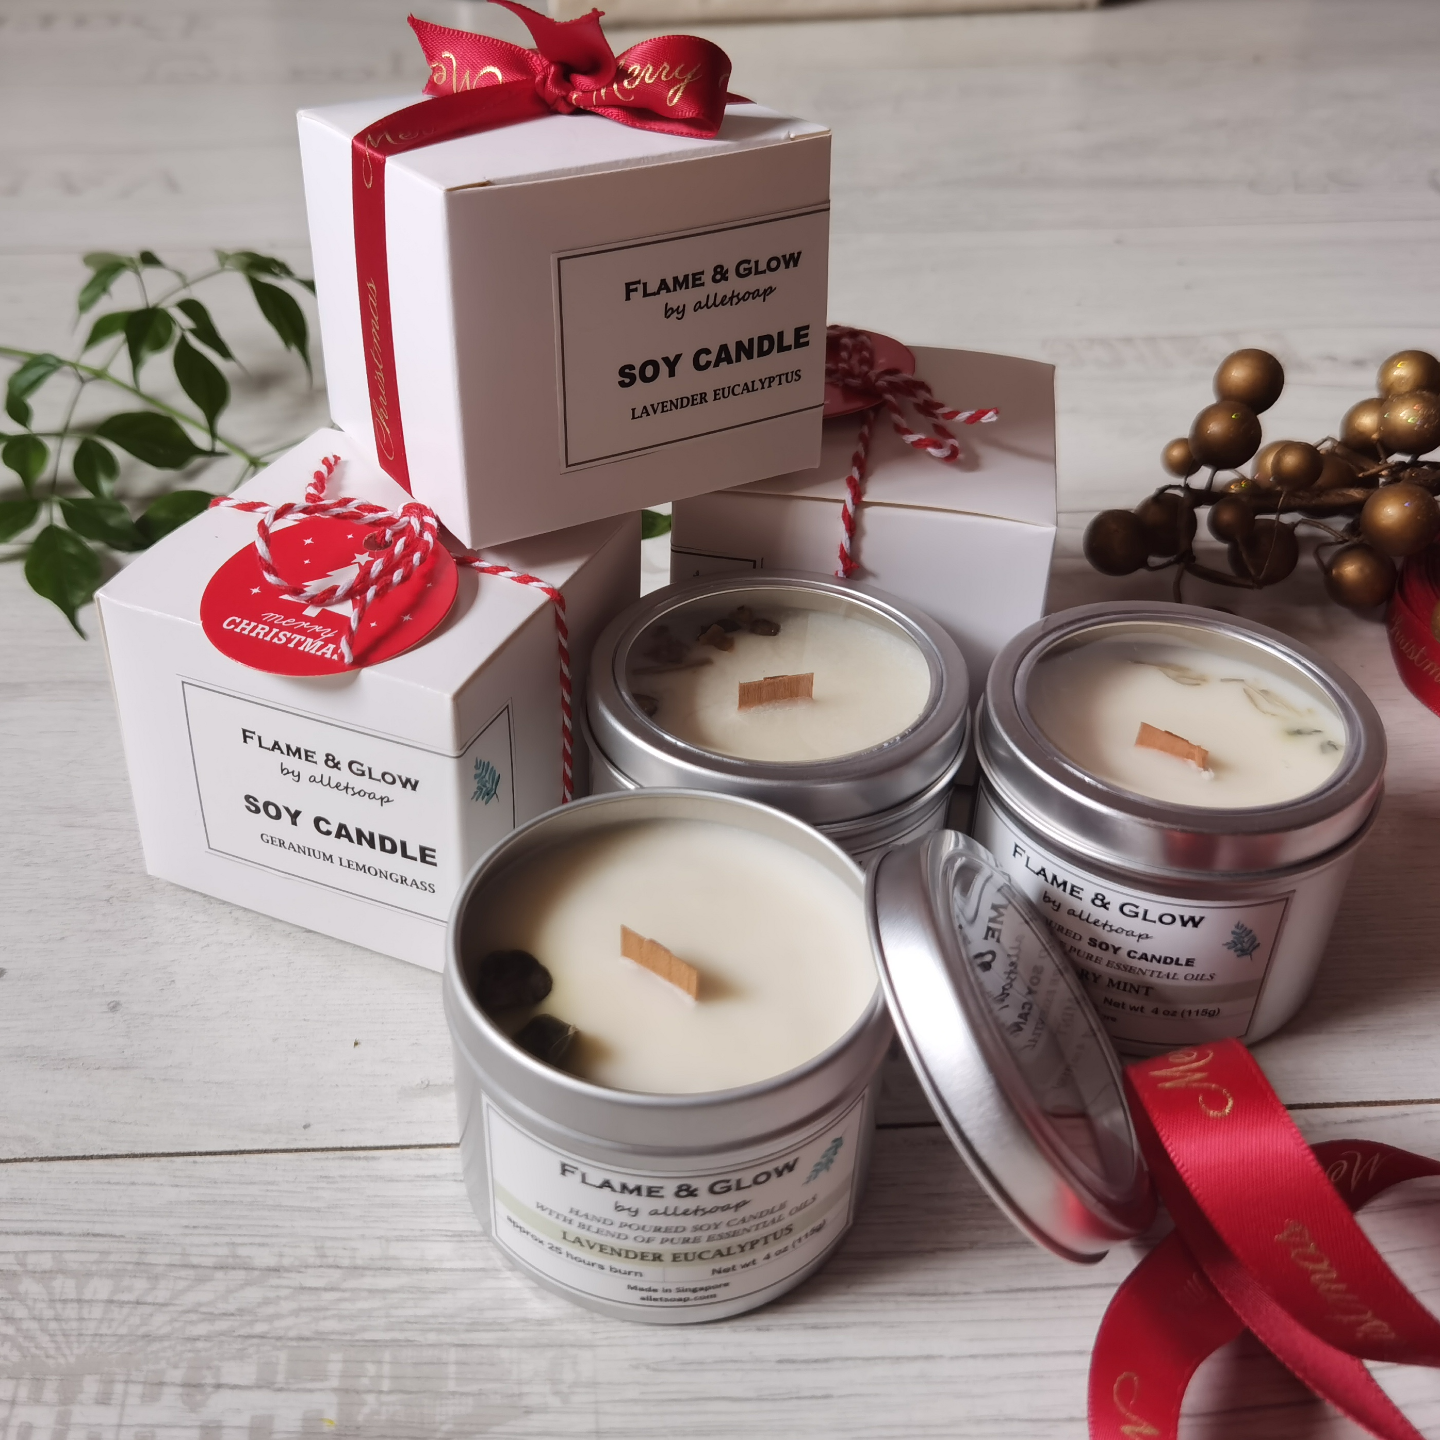 Bundle of 3 Soywax Candles 4oz - Flame & Glow